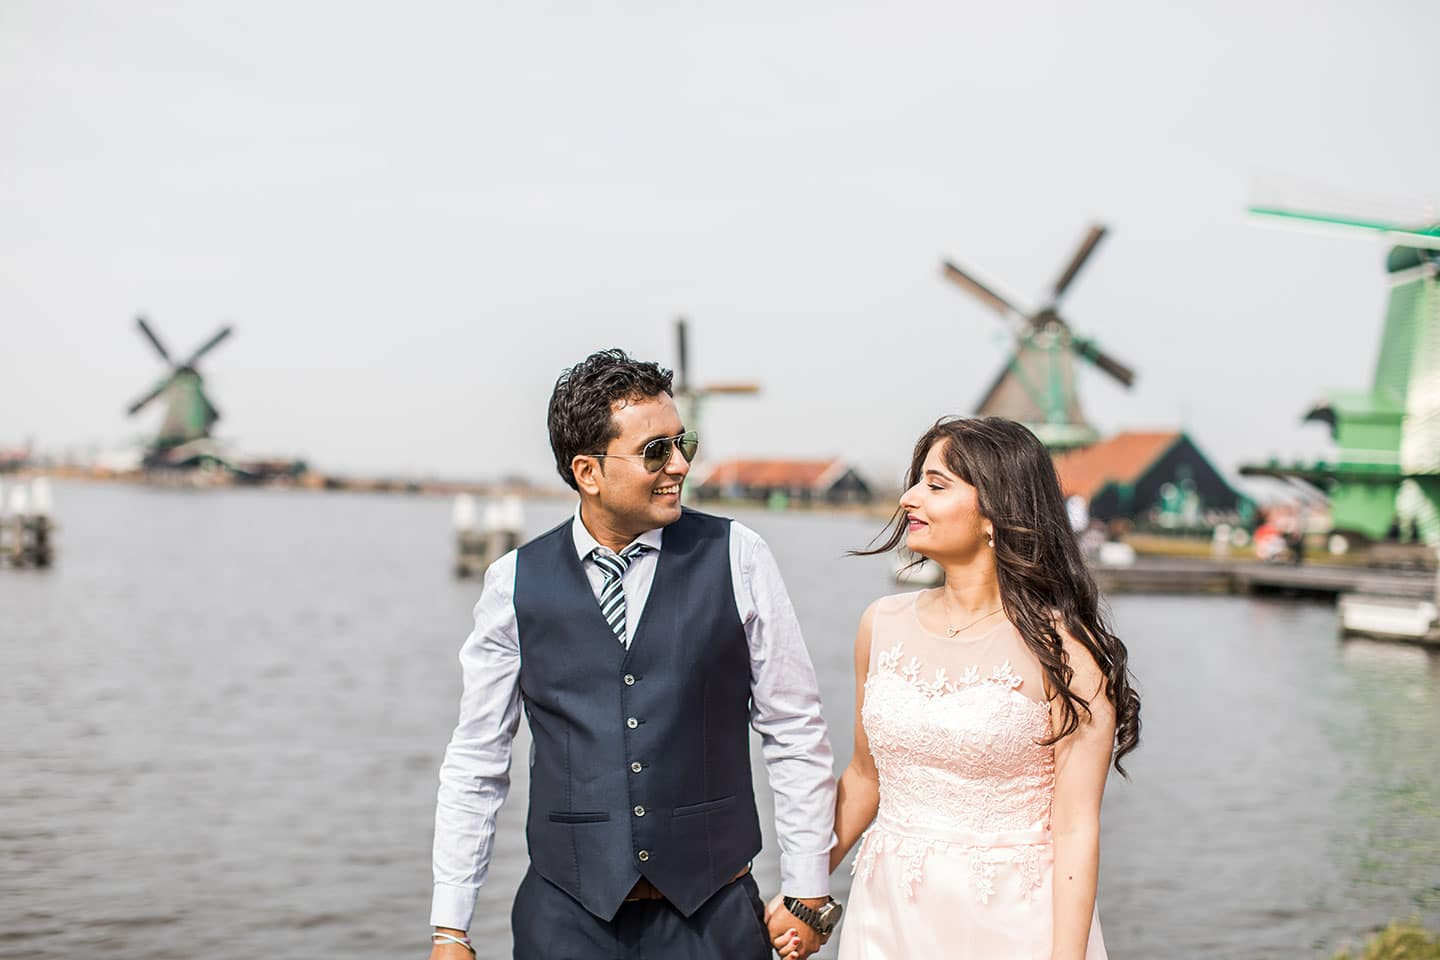 Prewedding photoshoot at Zaanse Schans windmill village near Amsterdam, Holland for an Indian couple